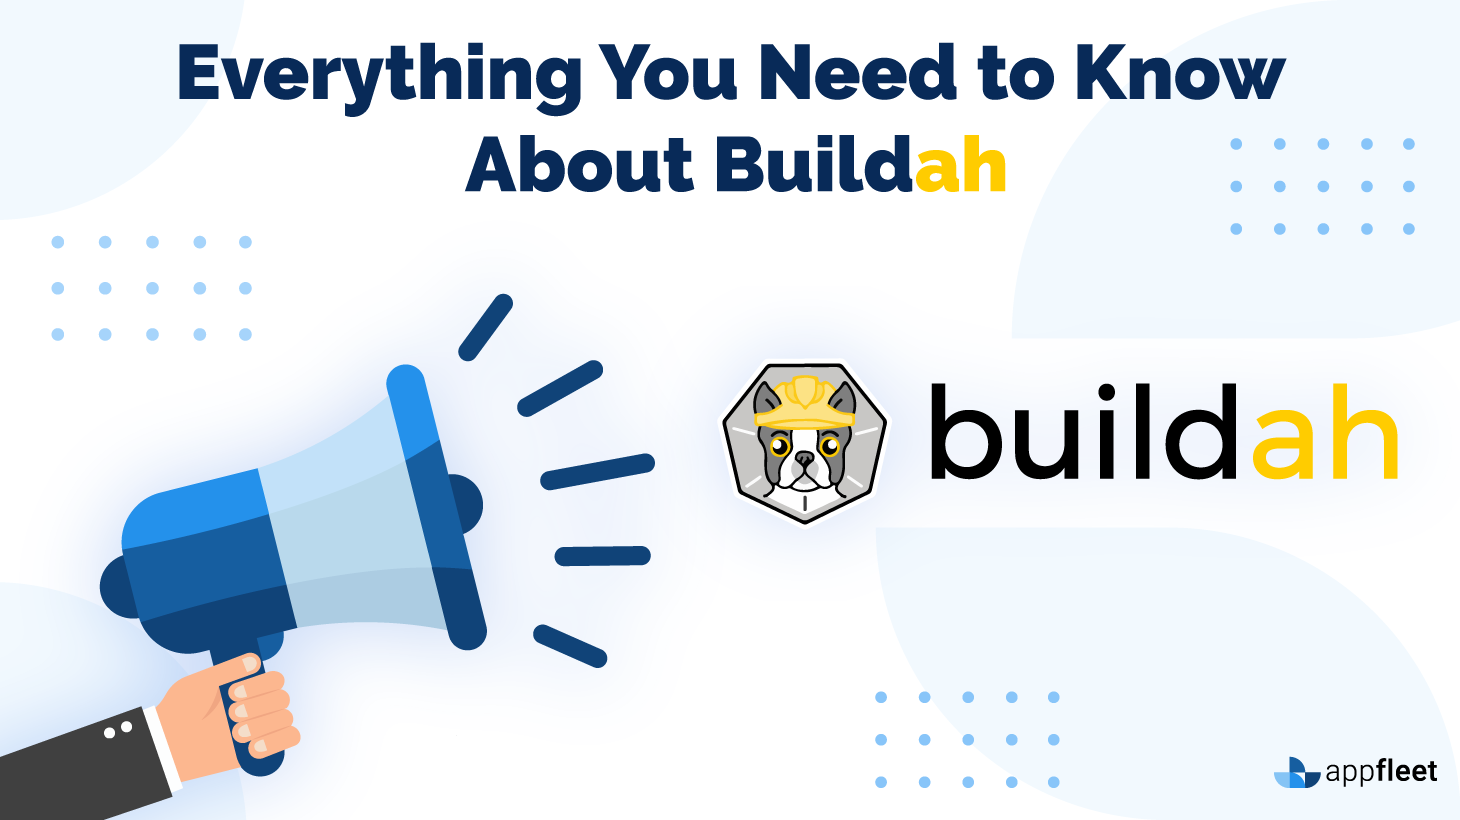 Everything You Need to Know About Buildah